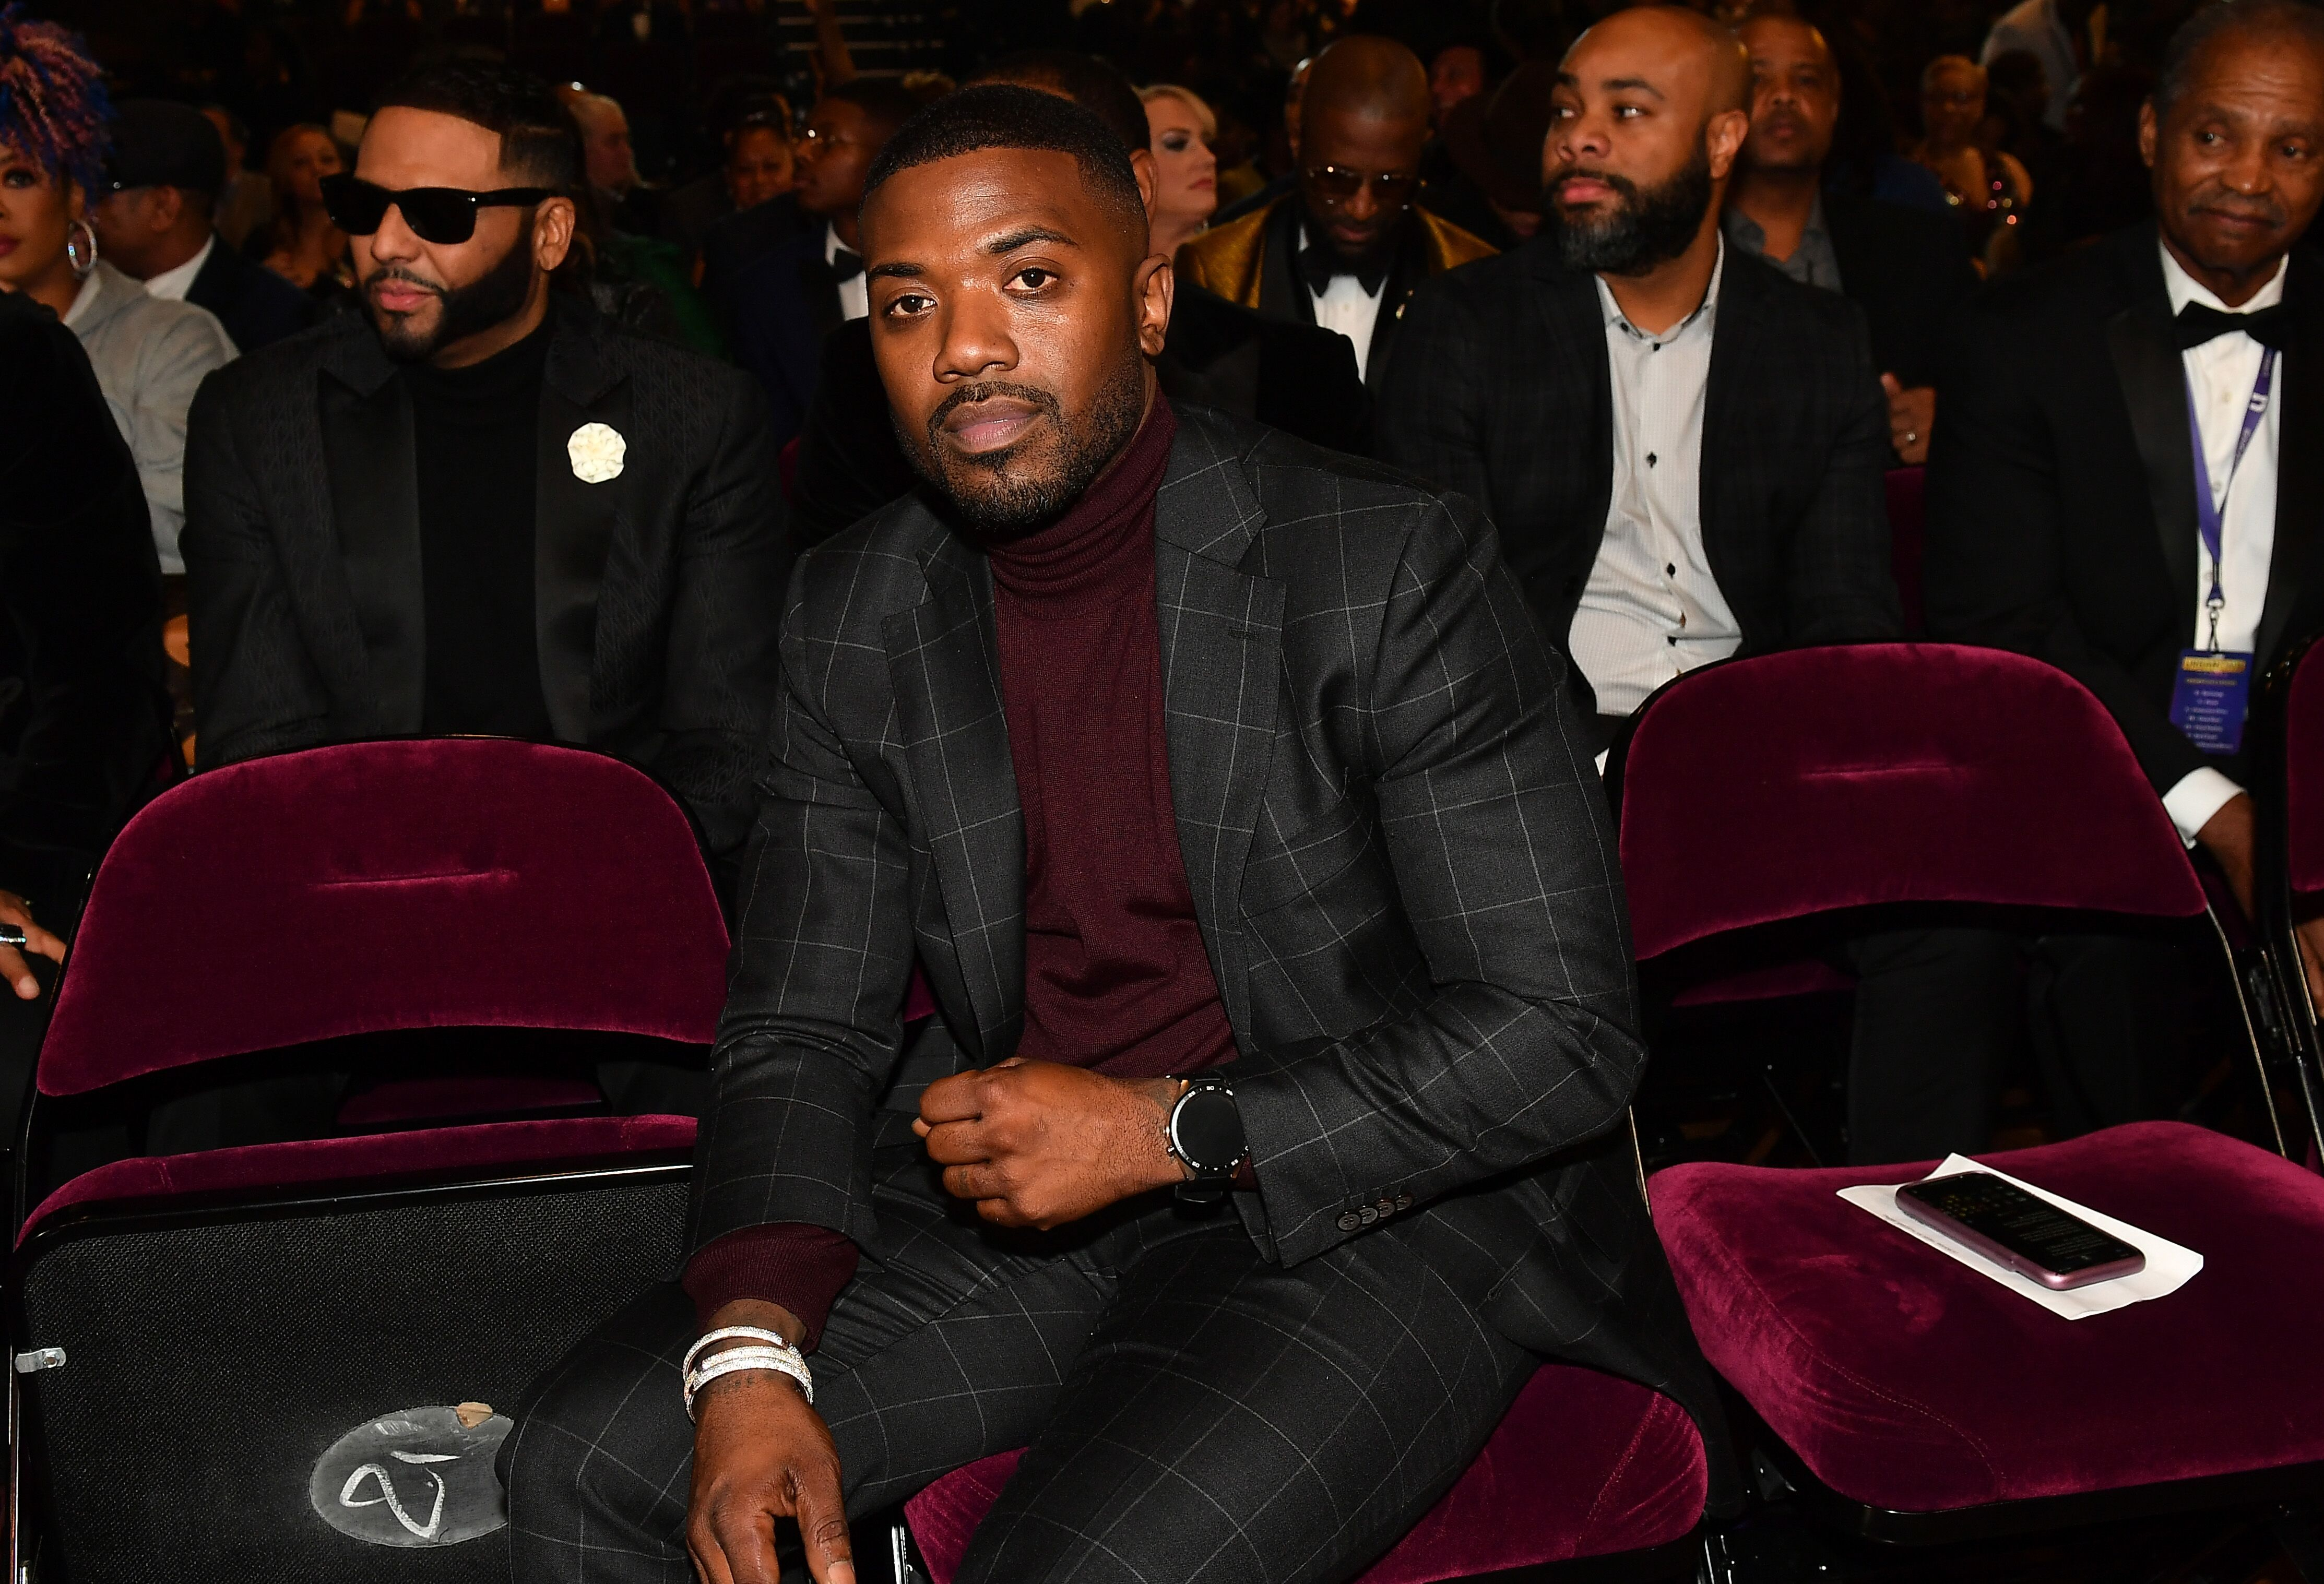 Ray J attends an awards show | Source: Getty Images/GlobalImagesUkraine